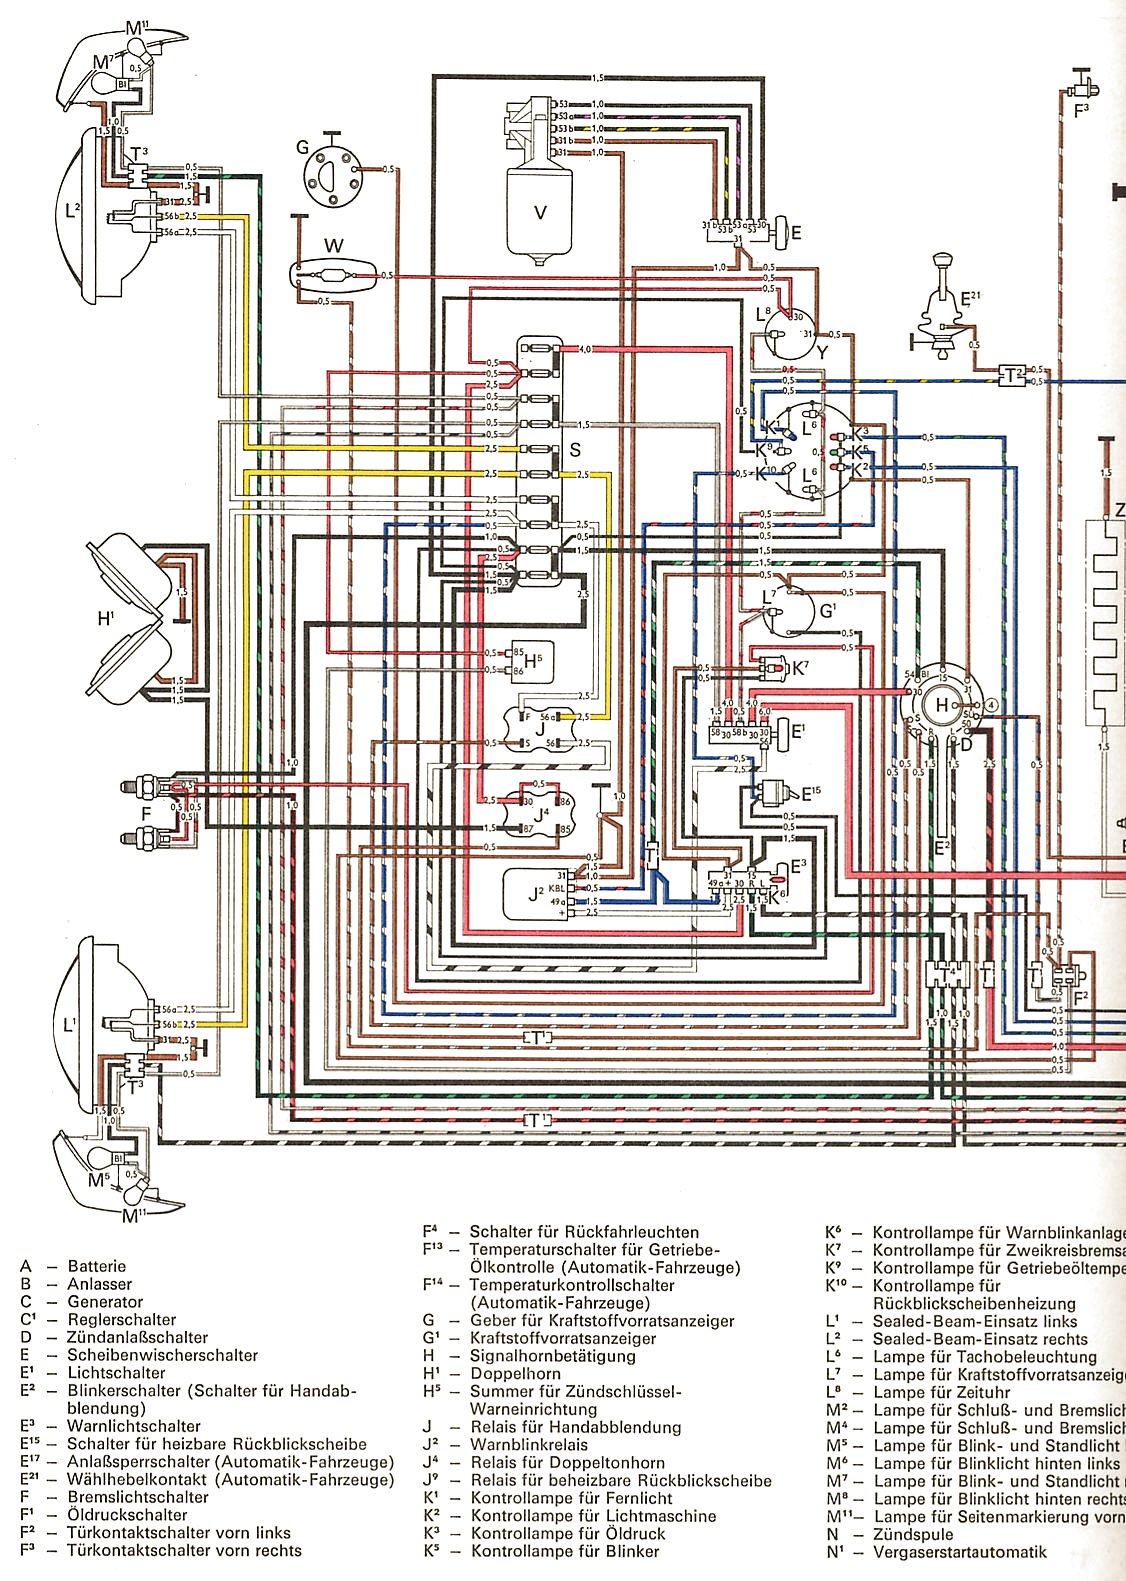 1969 Dodge Charger Fuse Box Diagram